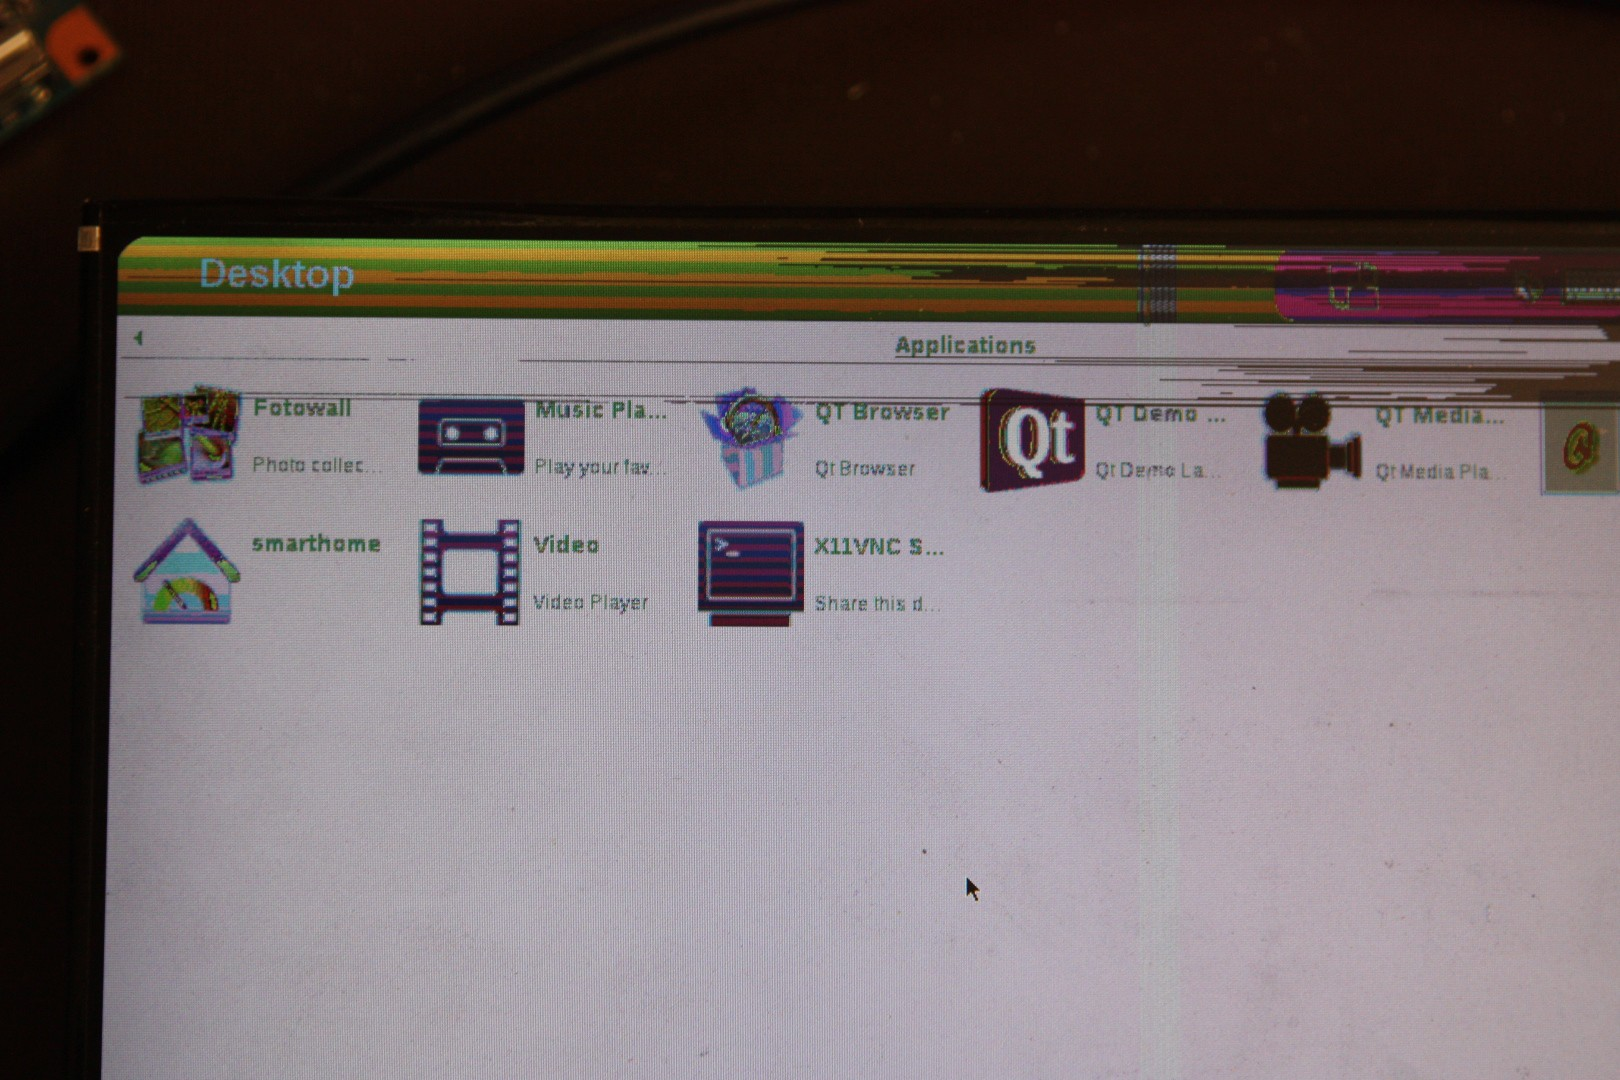 Lvds Laptop Display Interfacing Pin Vga Wiring Diagram Also 9 Pinout Together With Project Success